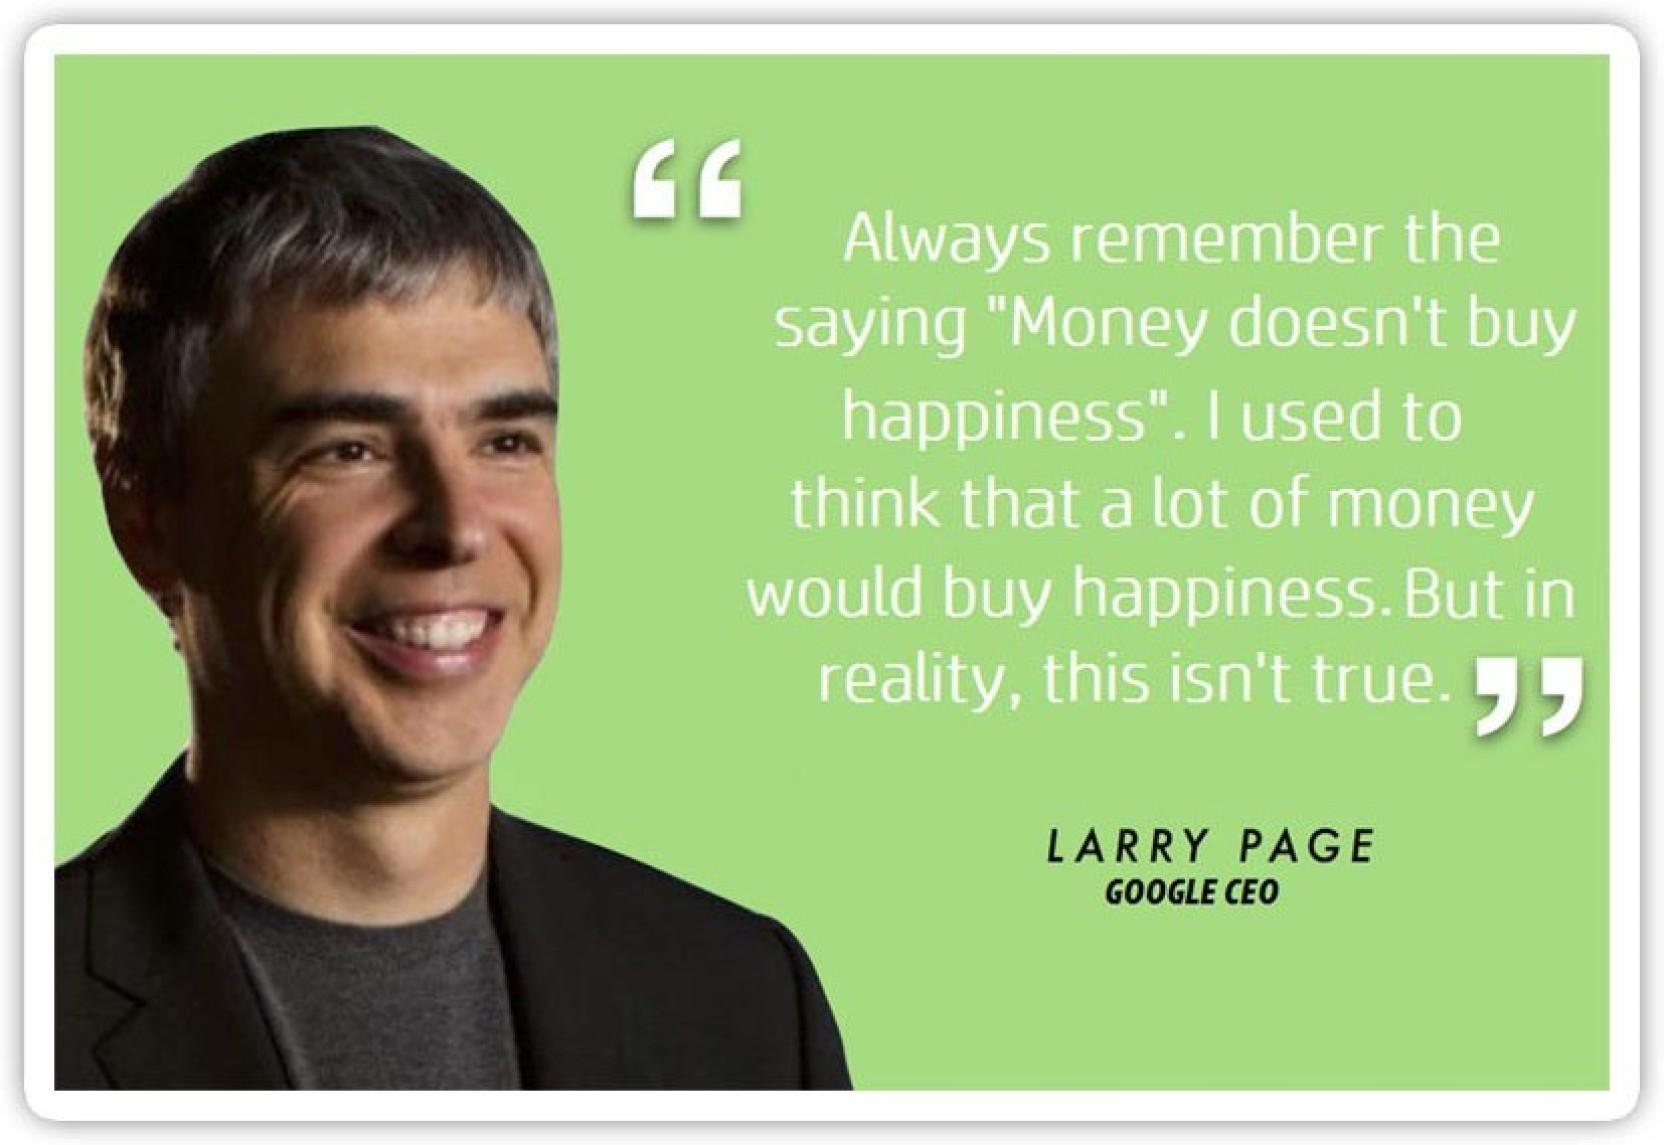 PixaDunes Larry Page Google Ceo Motivational Quotes Hd Quality Wall ...